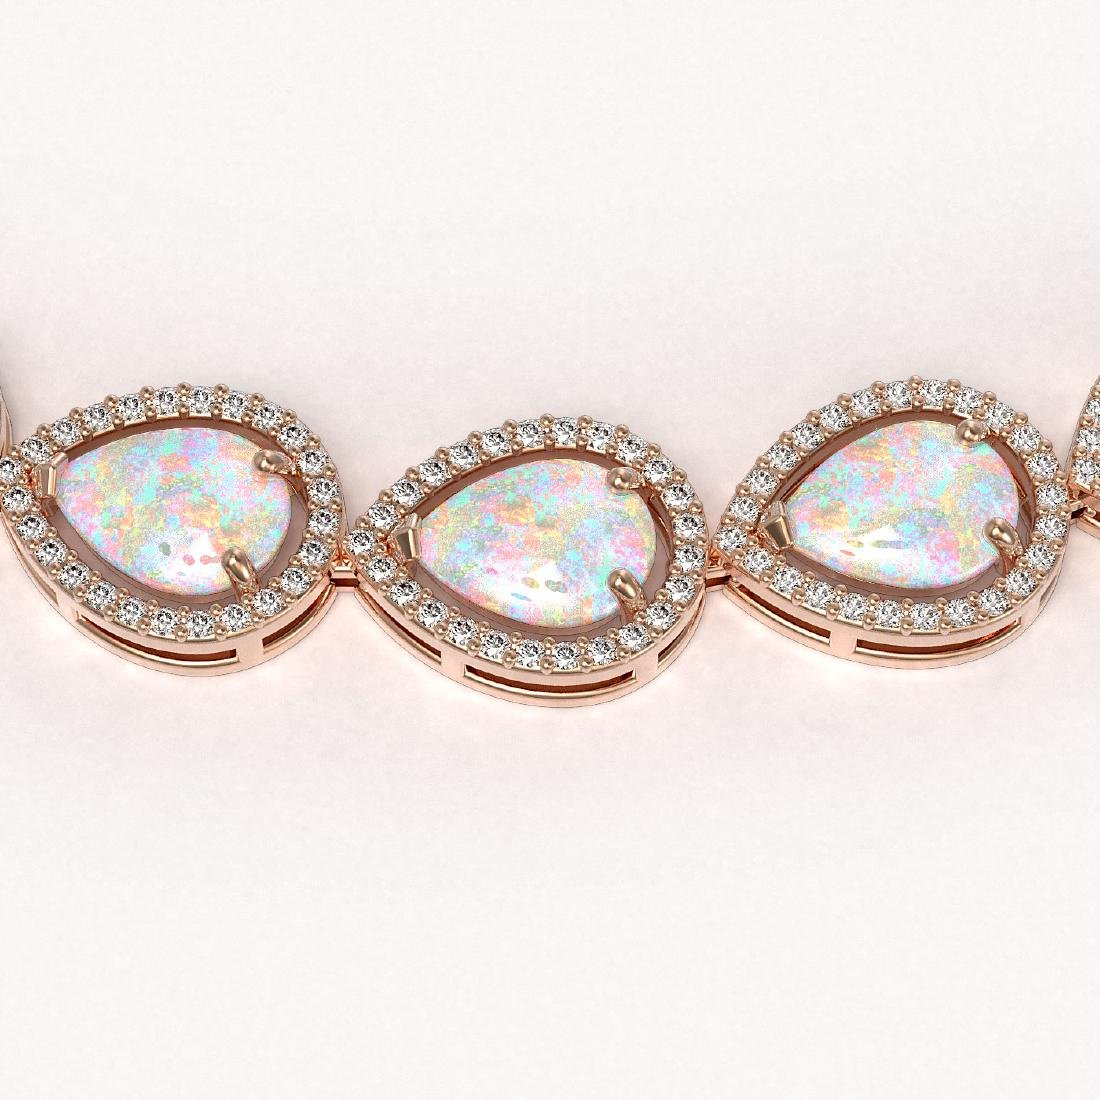 36.48 CTW Opal & Diamond Halo Necklace 10K Rose Gold - 3